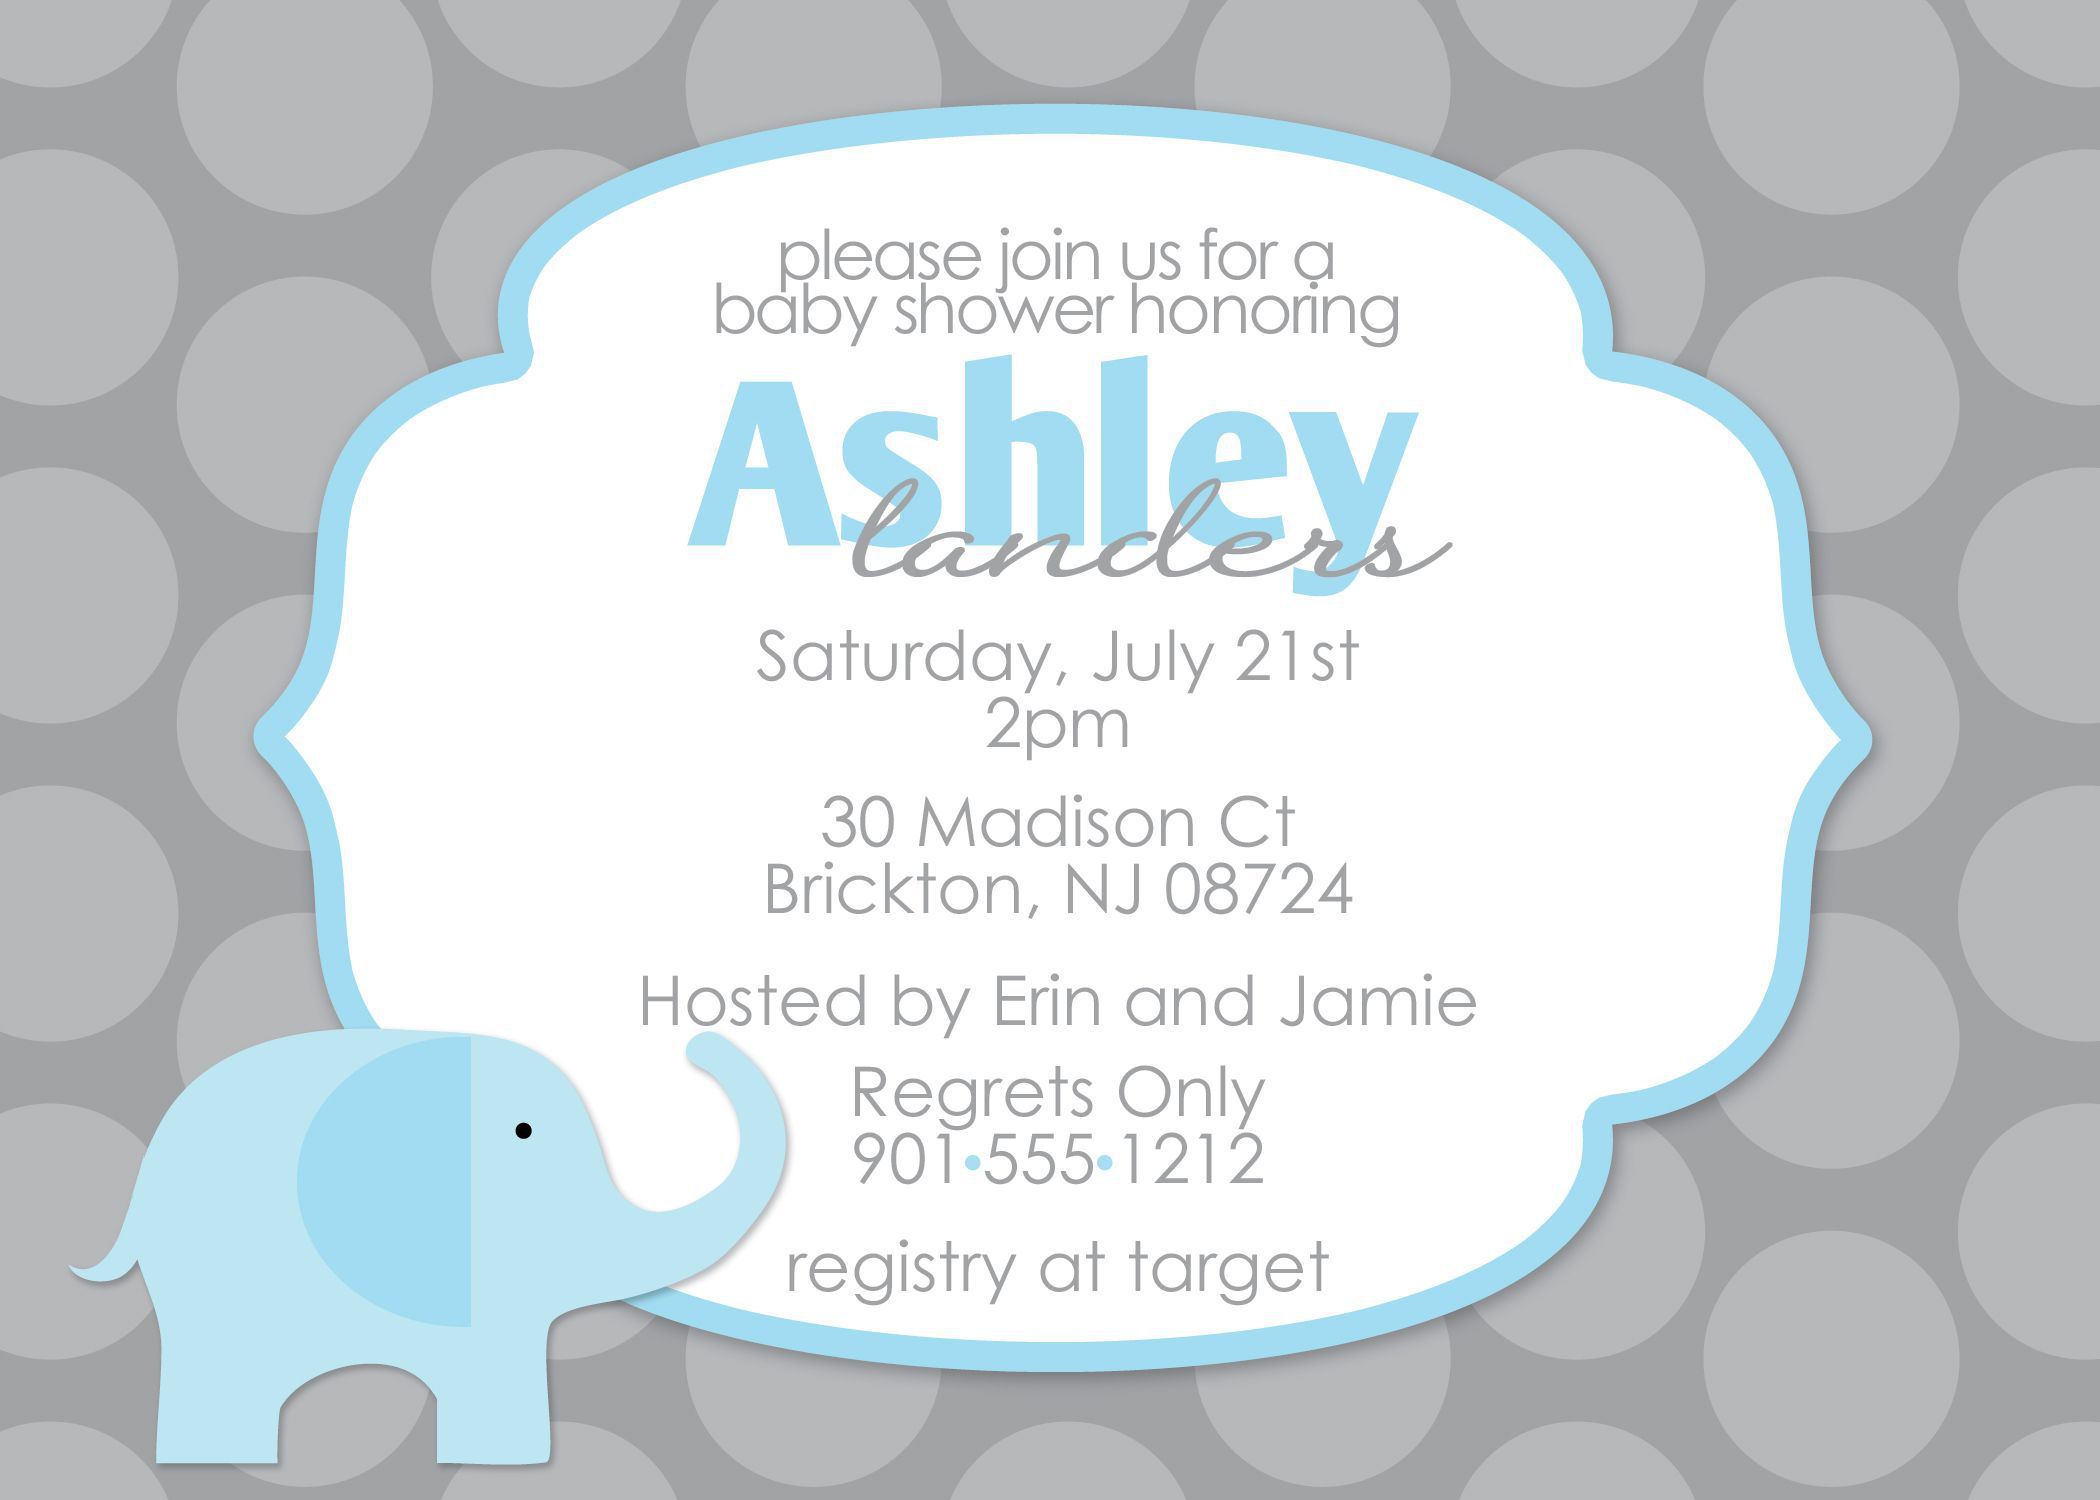 009 Unbelievable Diy Baby Shower Invitation Template Picture  Templates DiaperFull